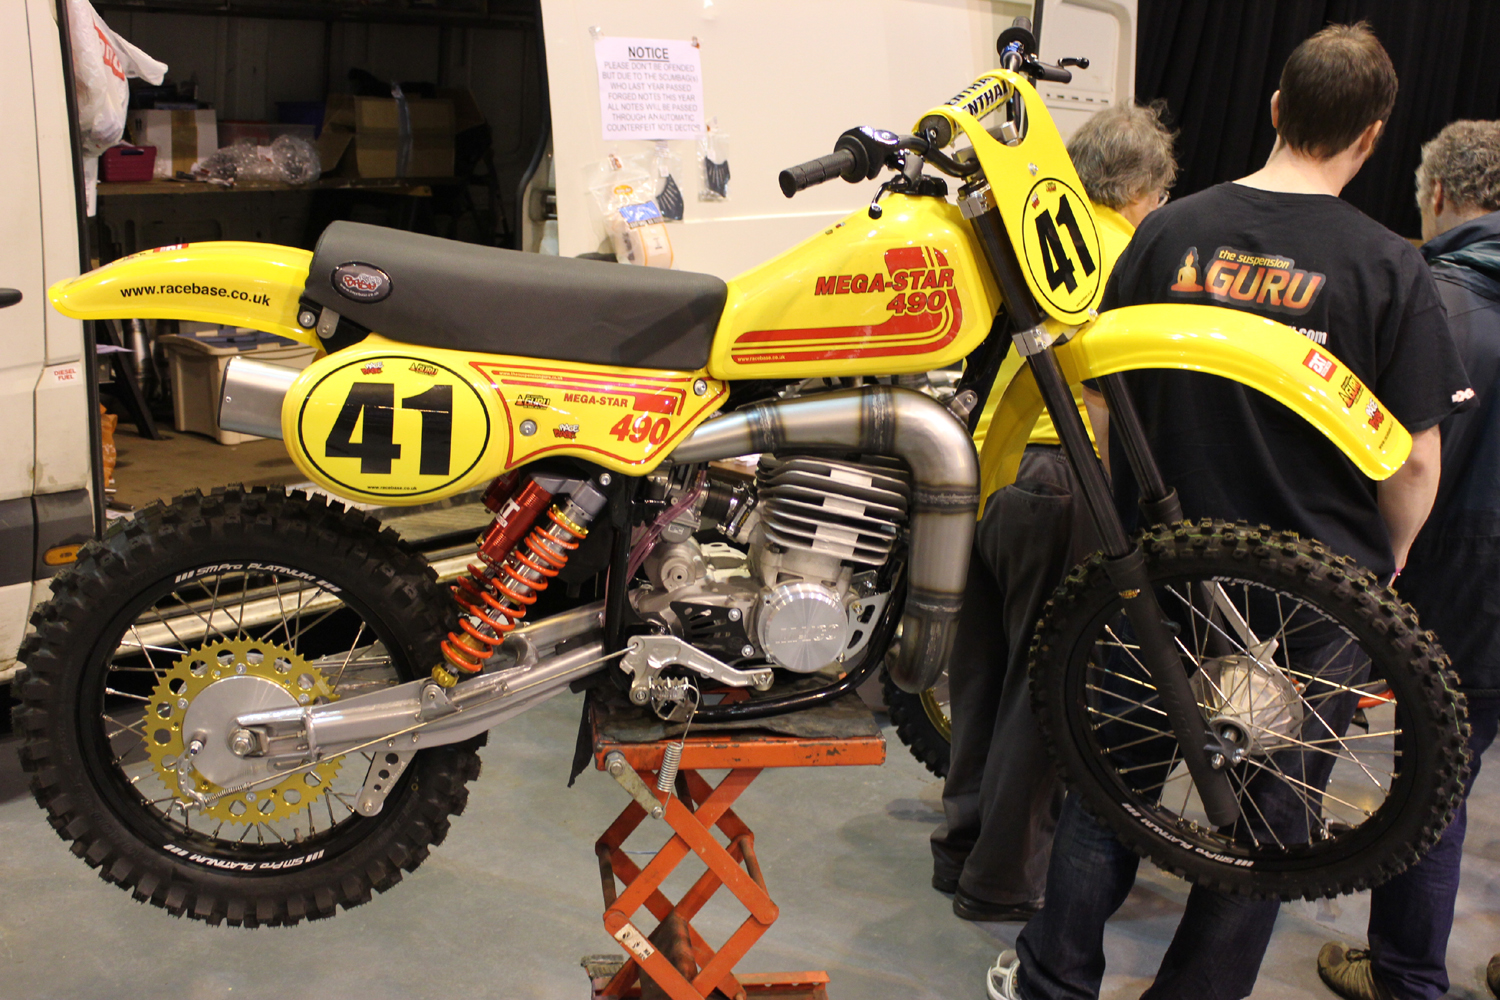 classicdirtbikerider.com-photo by Mr J-2015 Telford classic dirt bike show-MAICO 490 MEGA-STAR TWINSHOCK MX